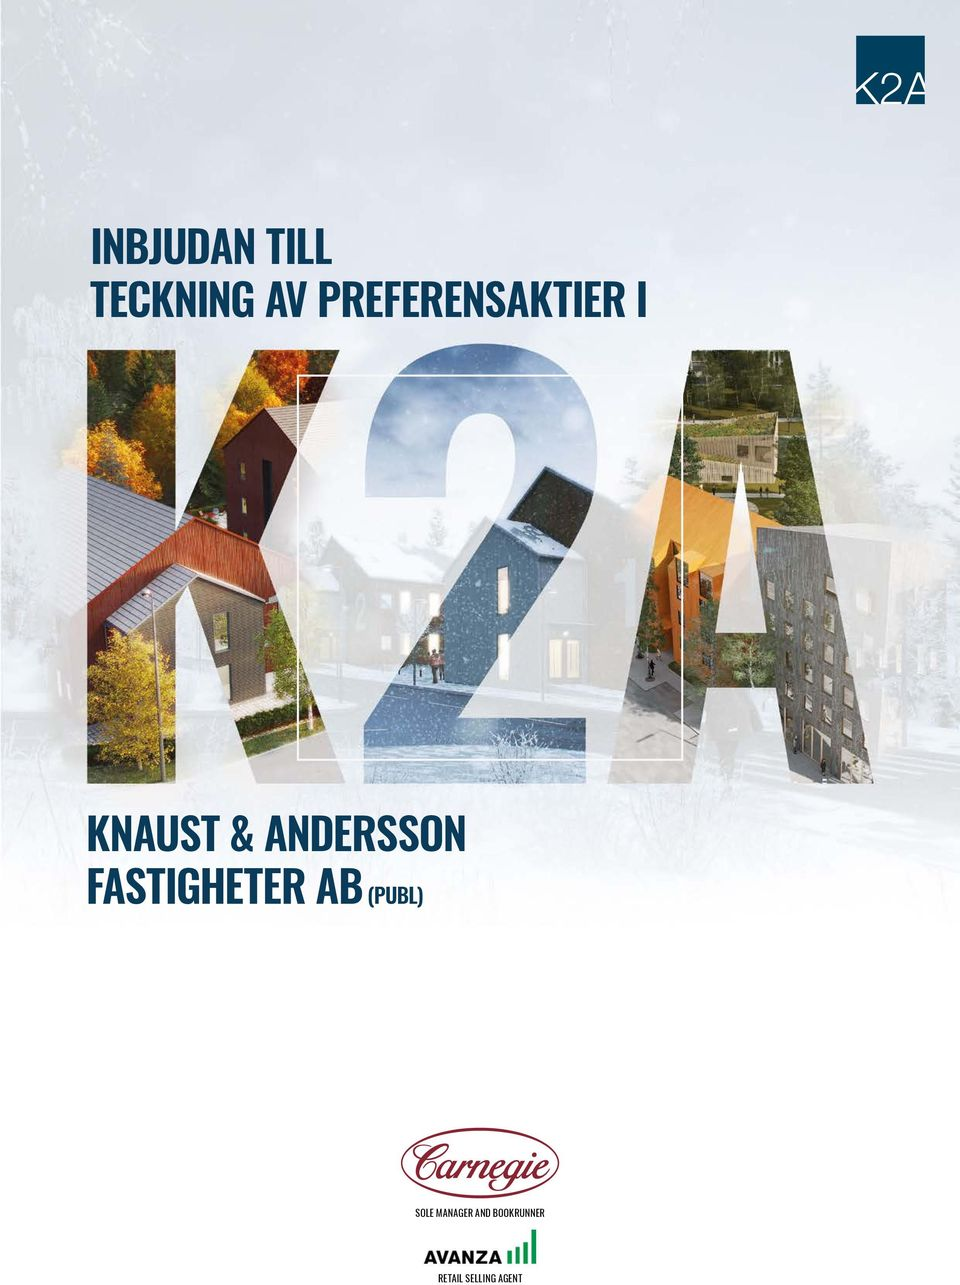 ANDERSSON FASTIGHETER AB (PUBL)